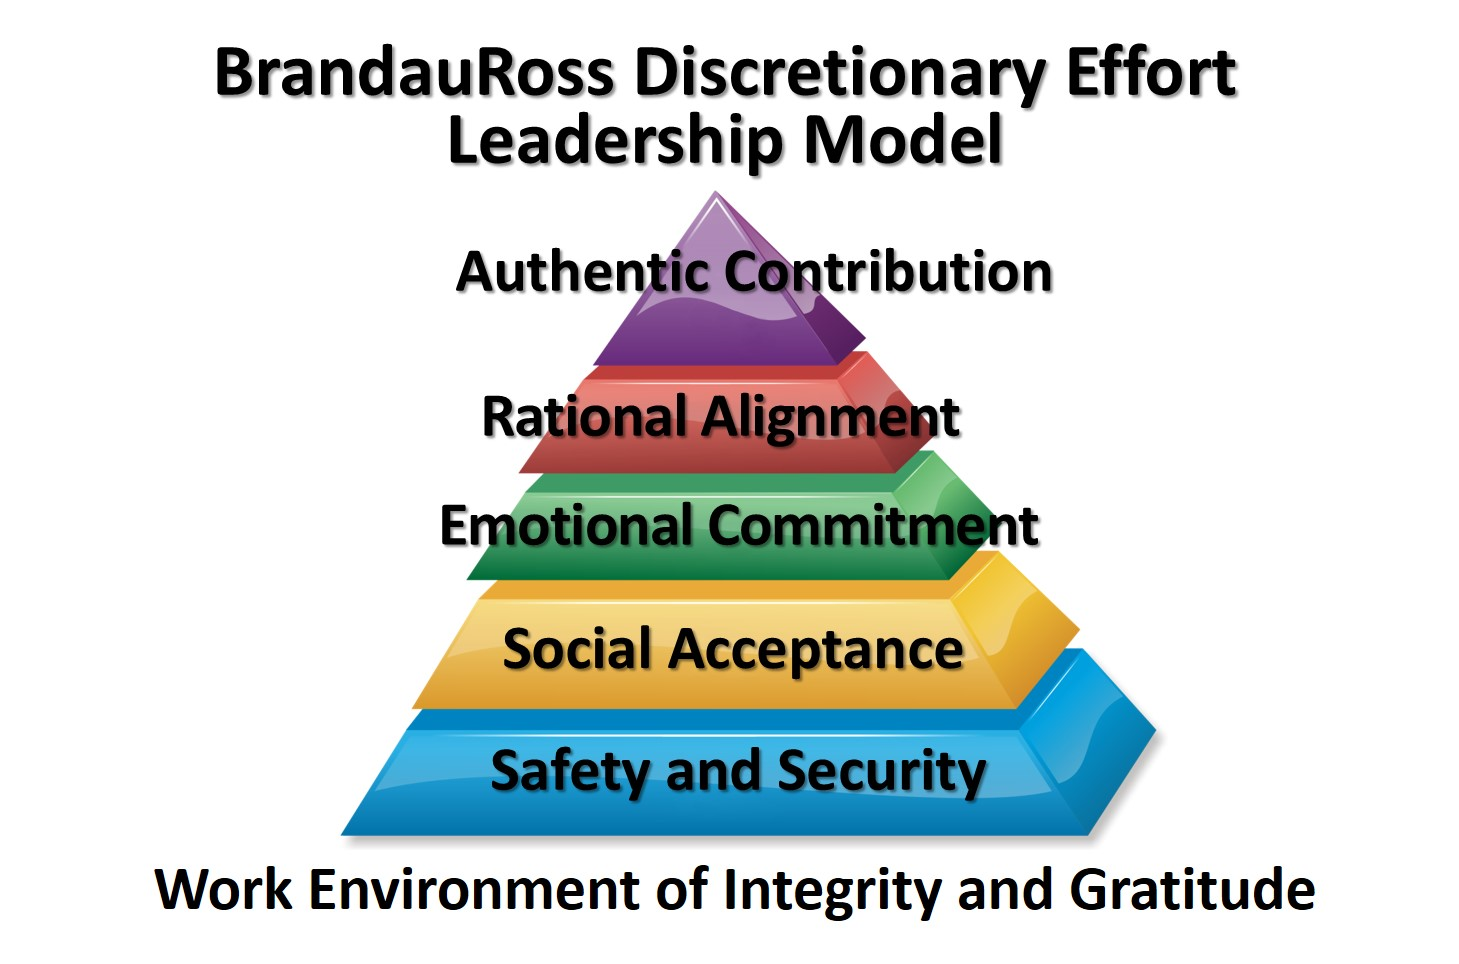 BrandauRoss Discretionary Effort Leadership Model